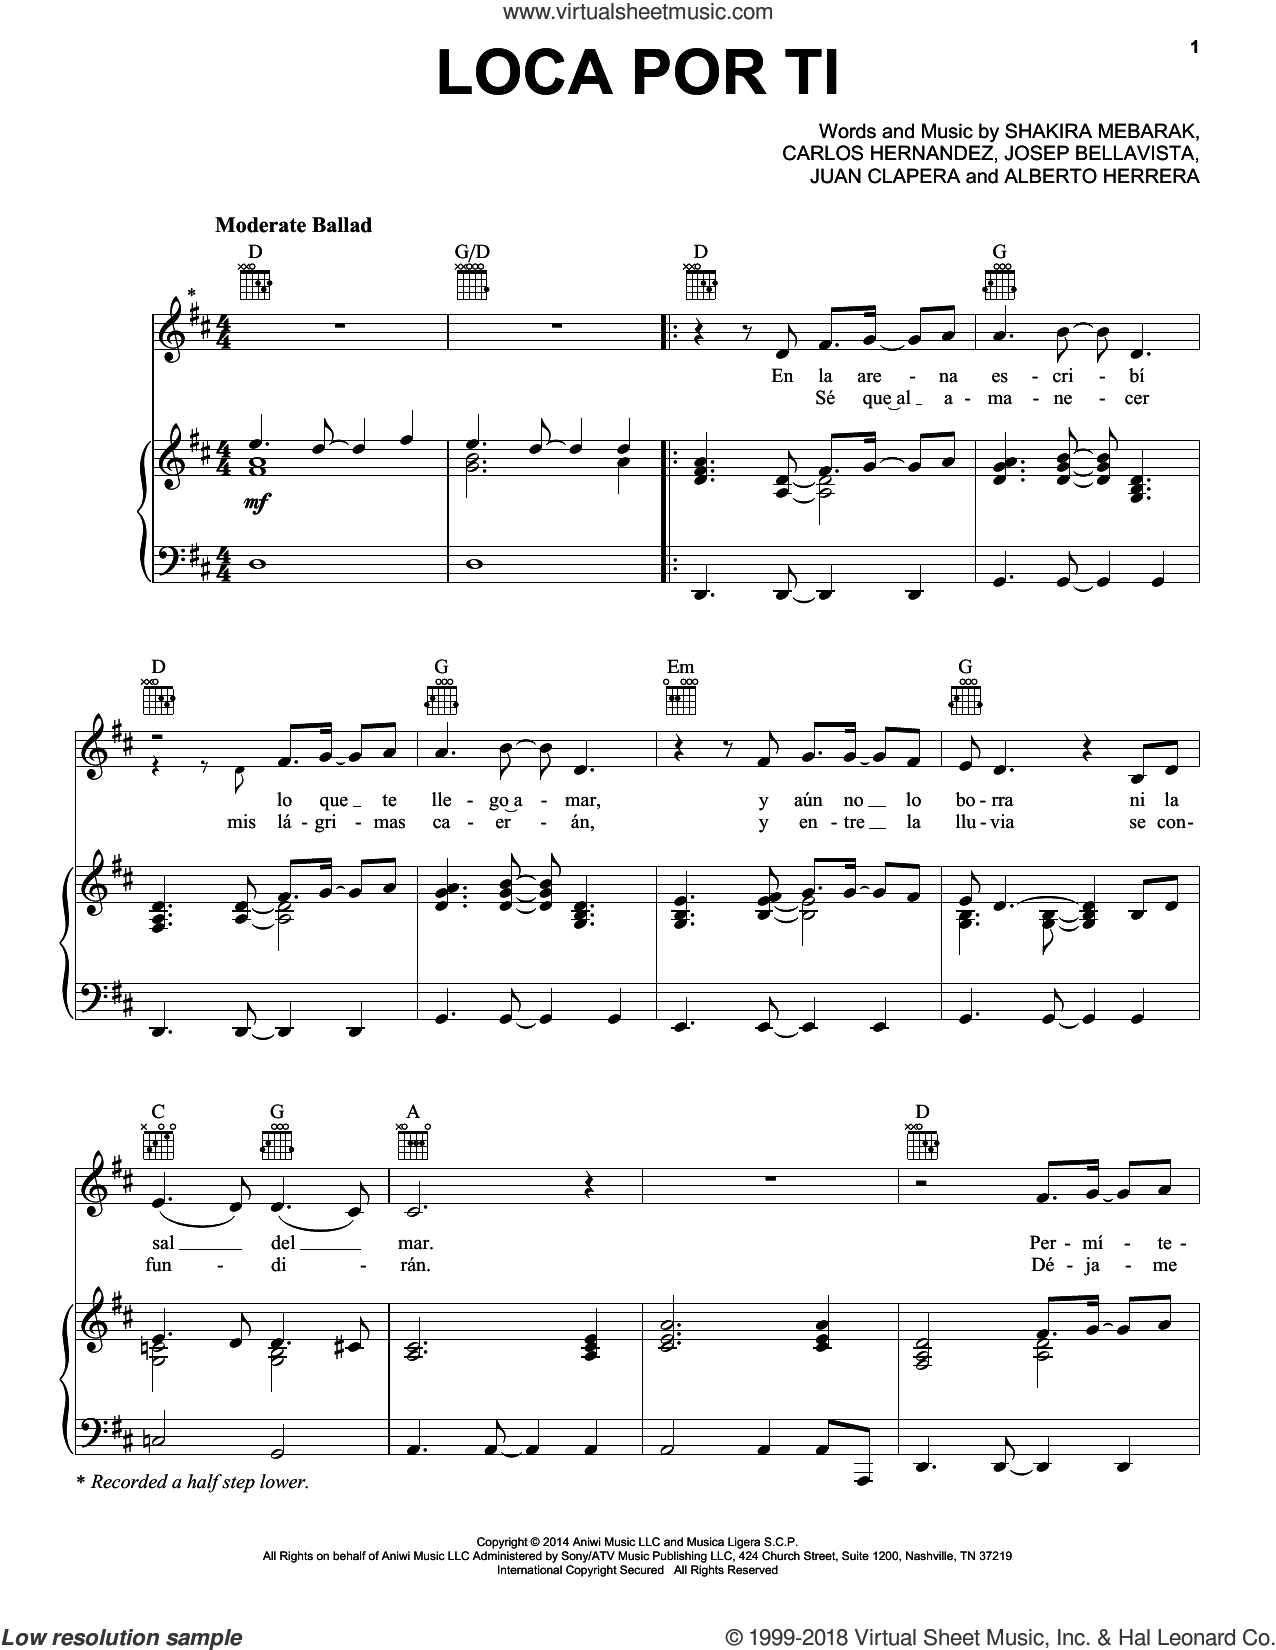 Loca Por Ti sheet music for voice, piano or guitar by Shakira, Alberto Herrera, Carlos Hernandez, Josep Bellavista, Juan Clapera and Shakira Mebarak, intermediate skill level